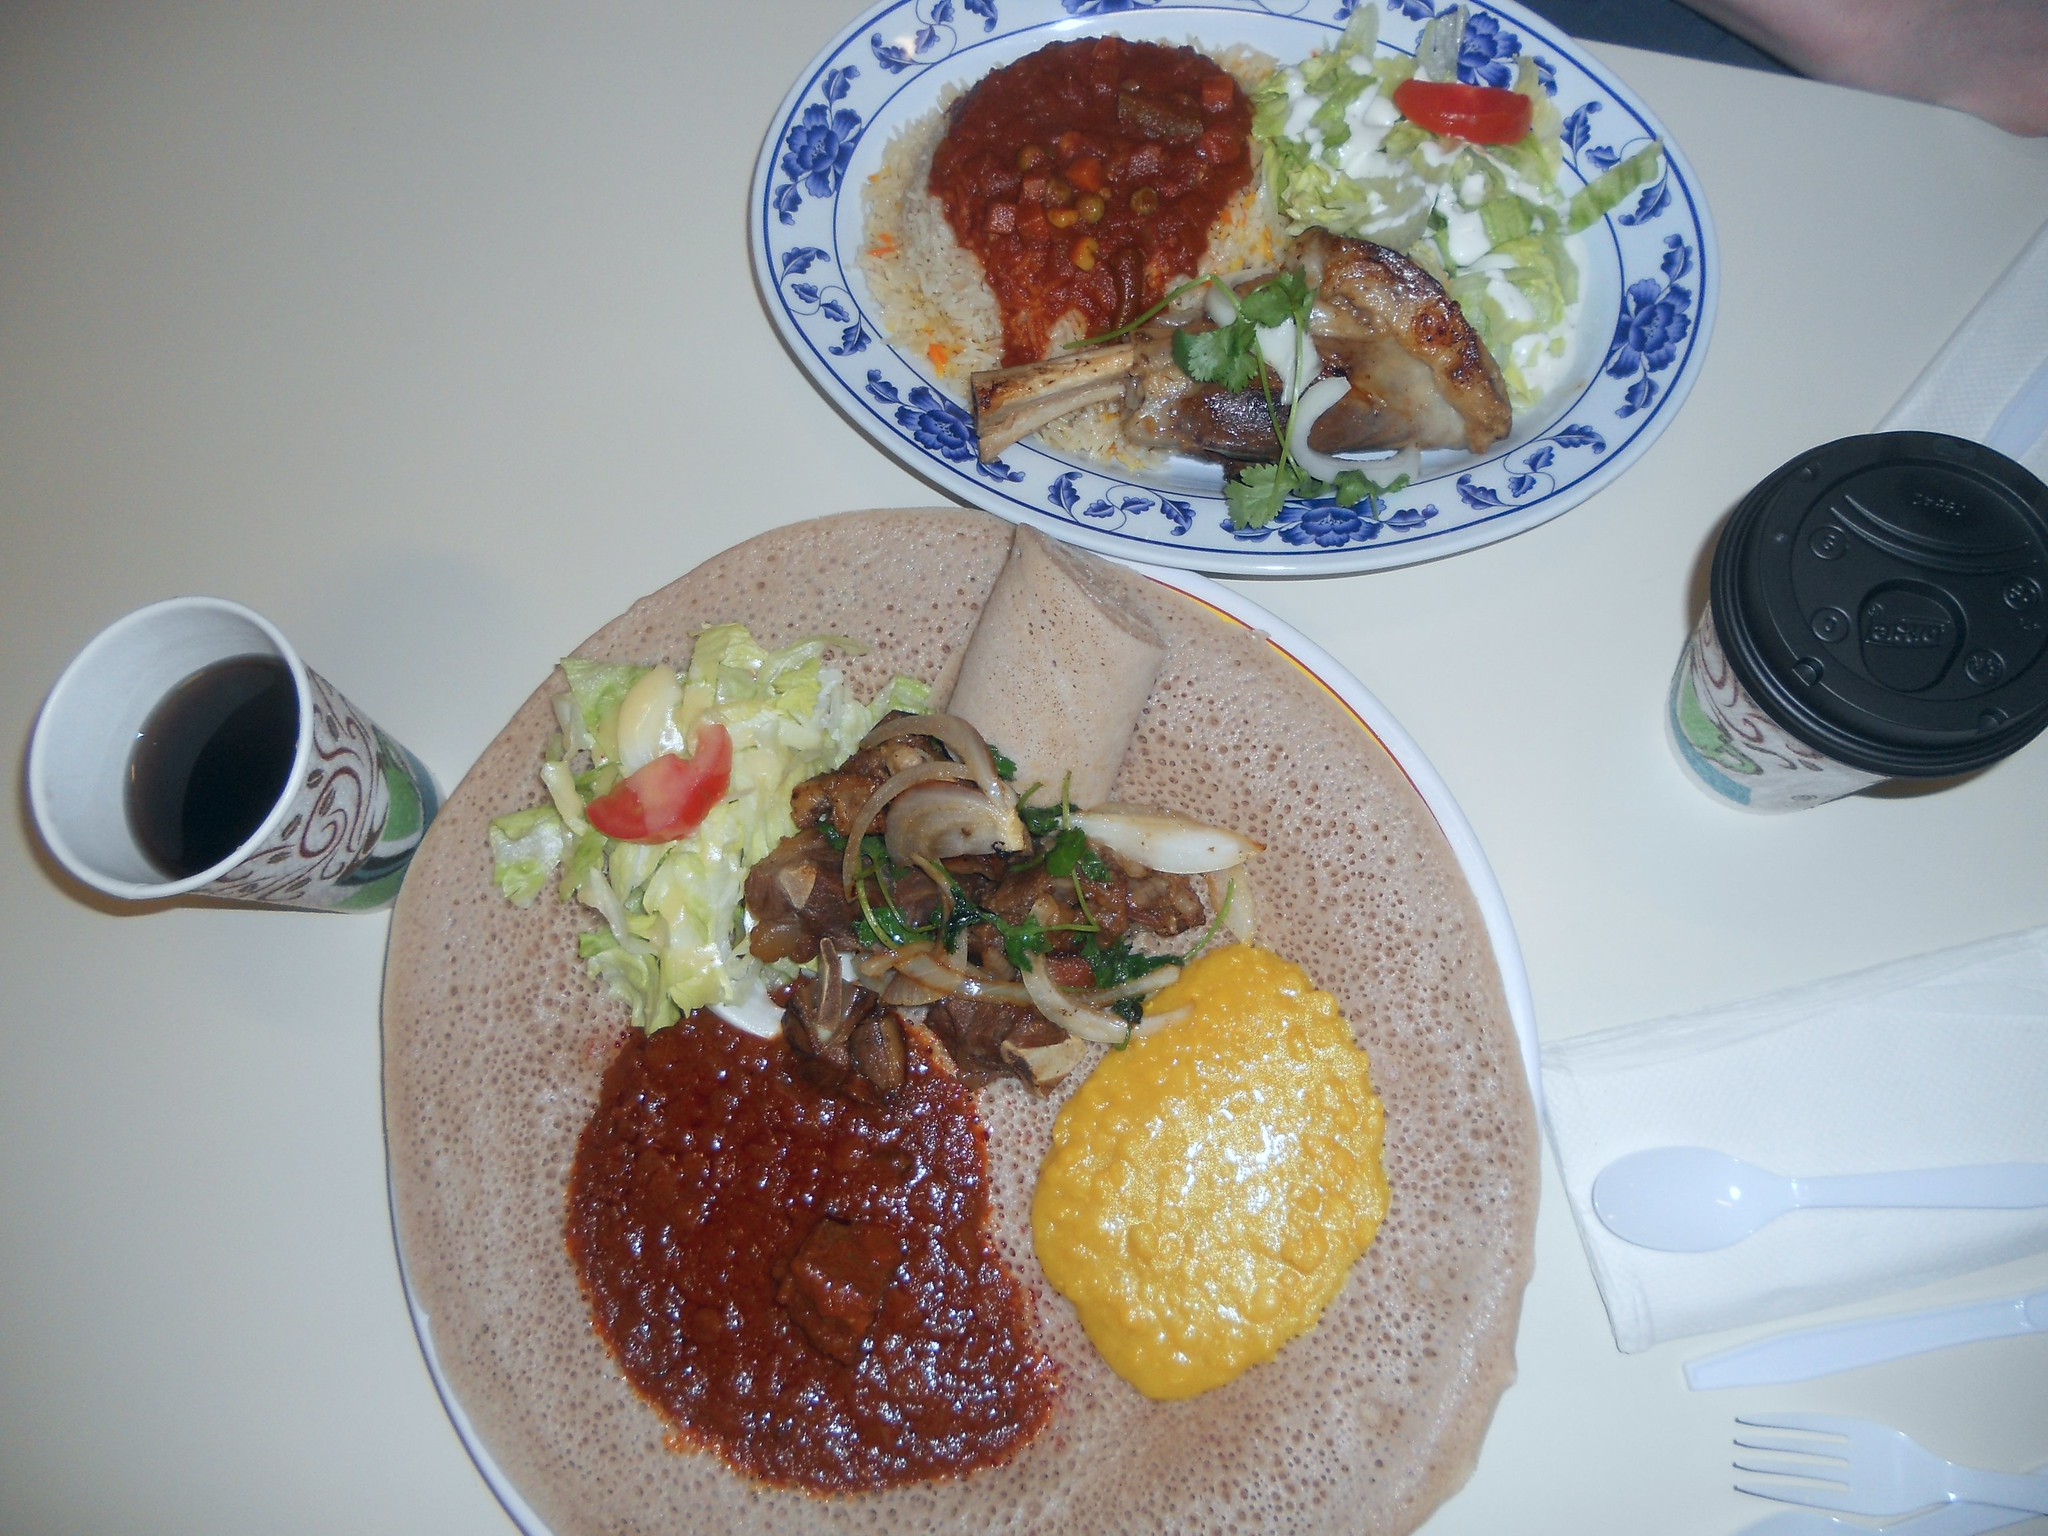 Delicious Ethiopian food at International Cafe Omaha